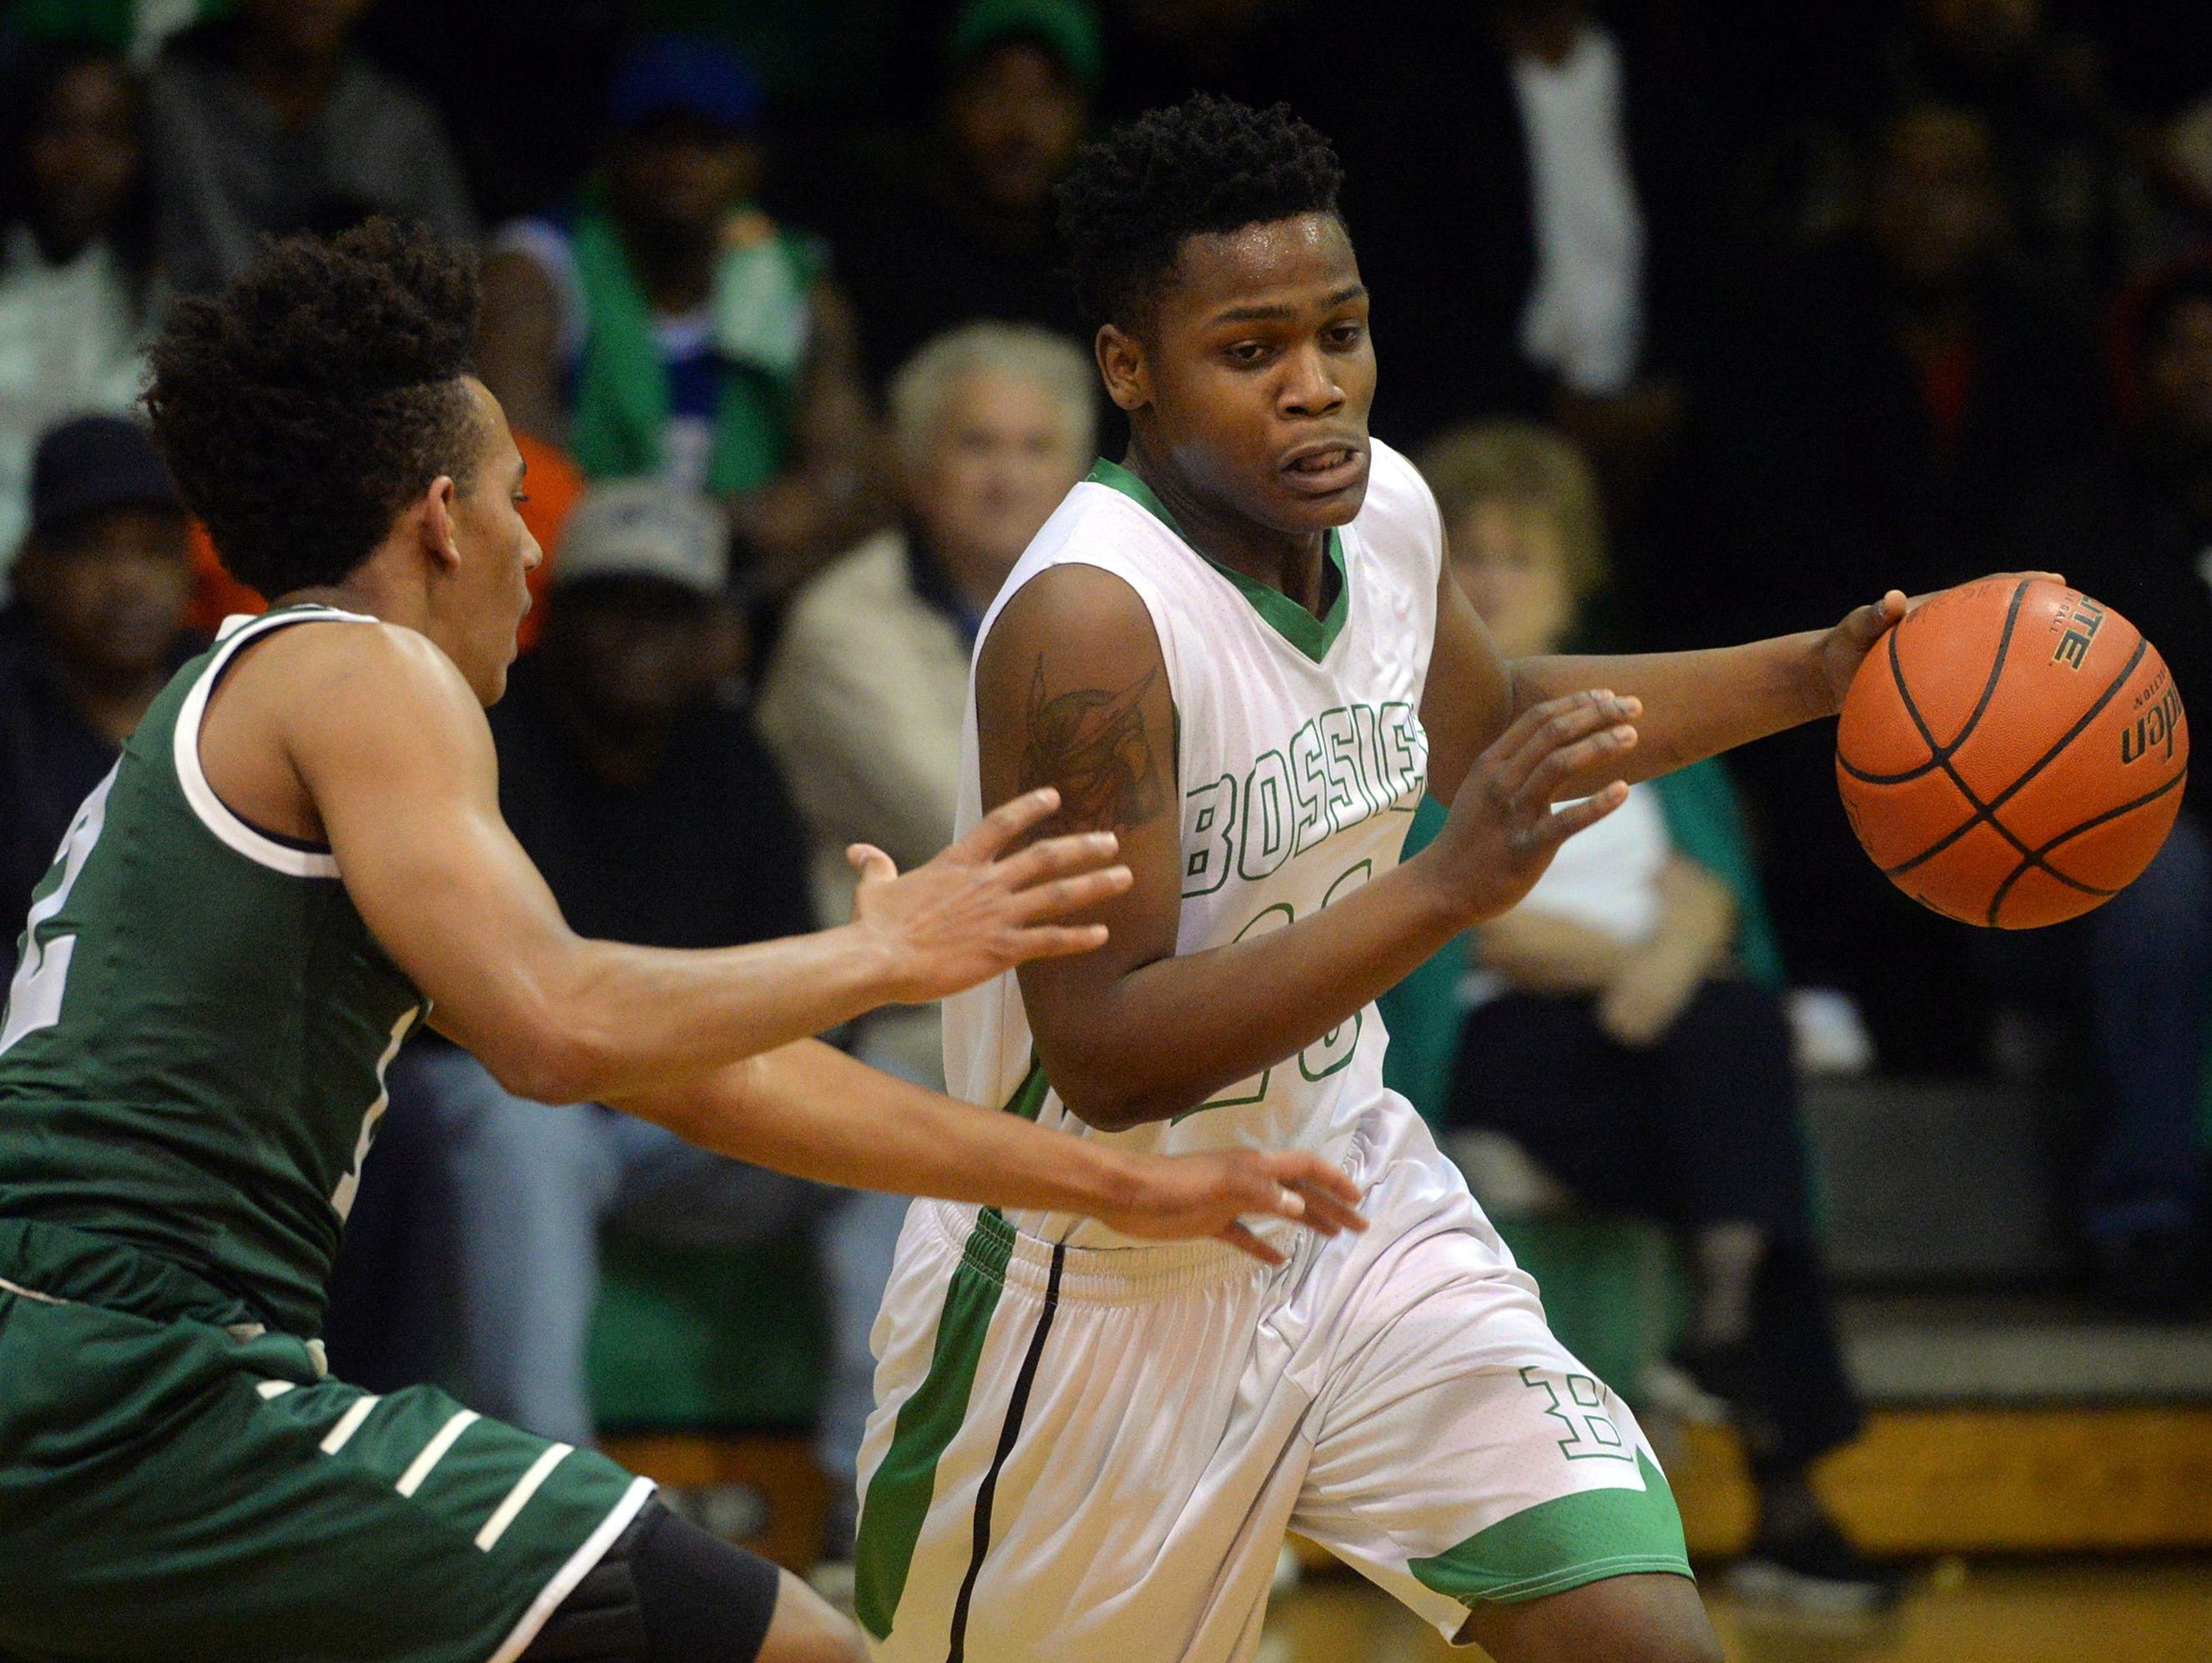 Senior guard Tyrese English is expected to lead the defending Class 4A state champs this season.